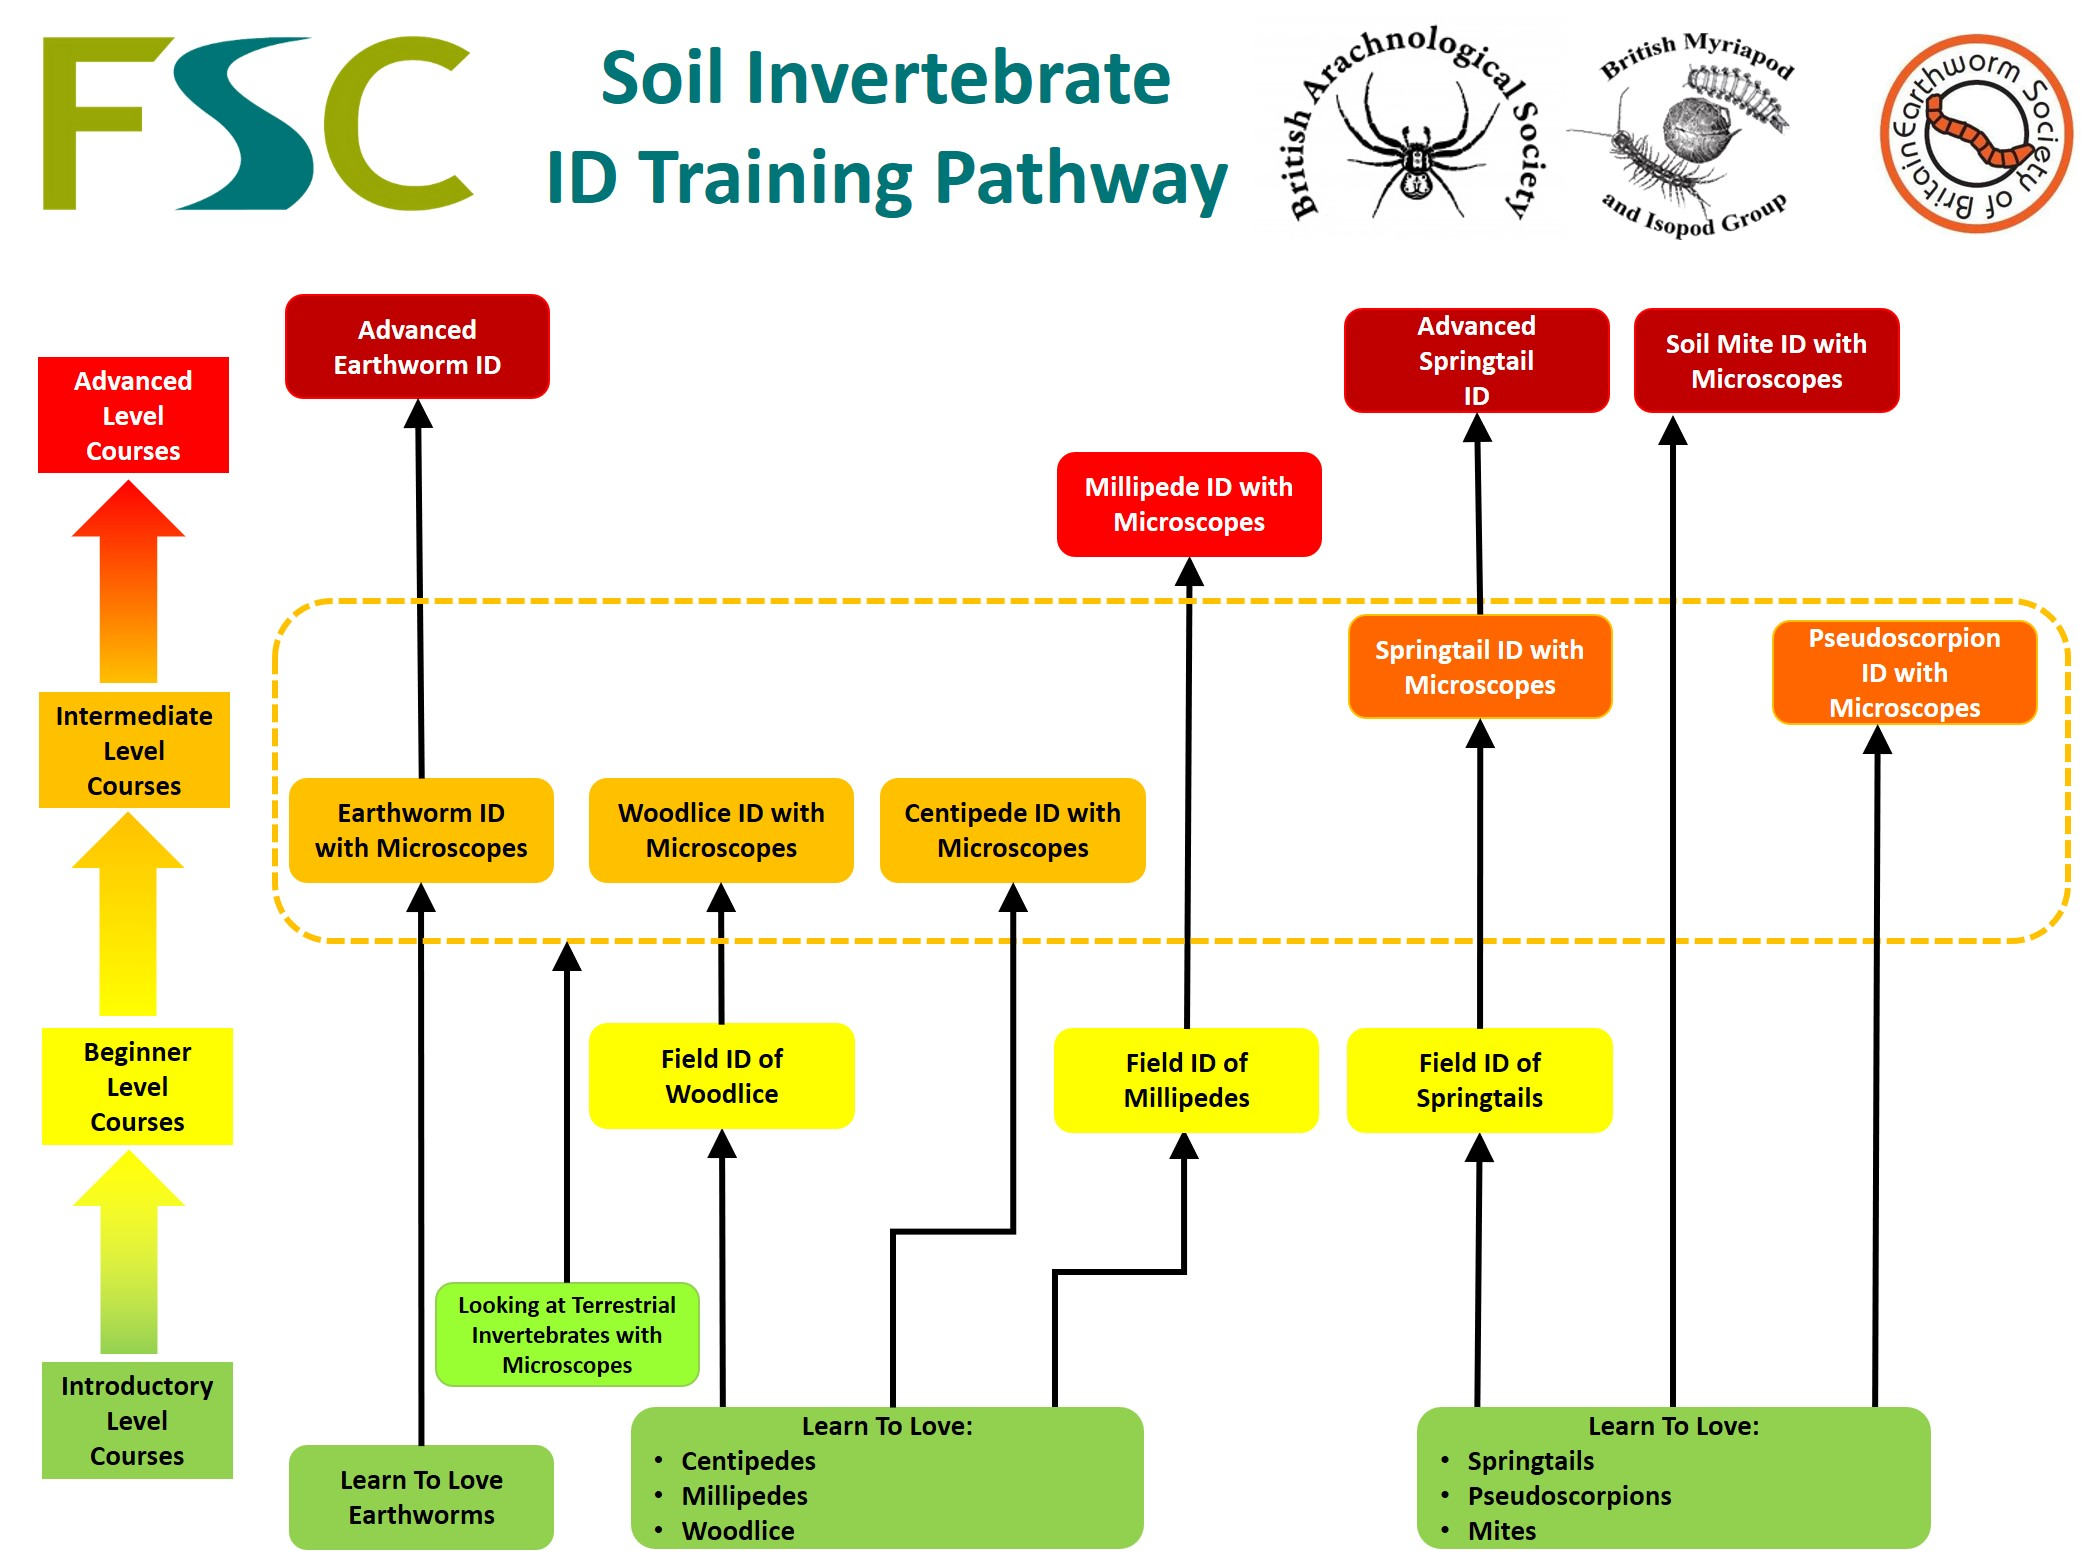 soil Invertebrate Training Pathway